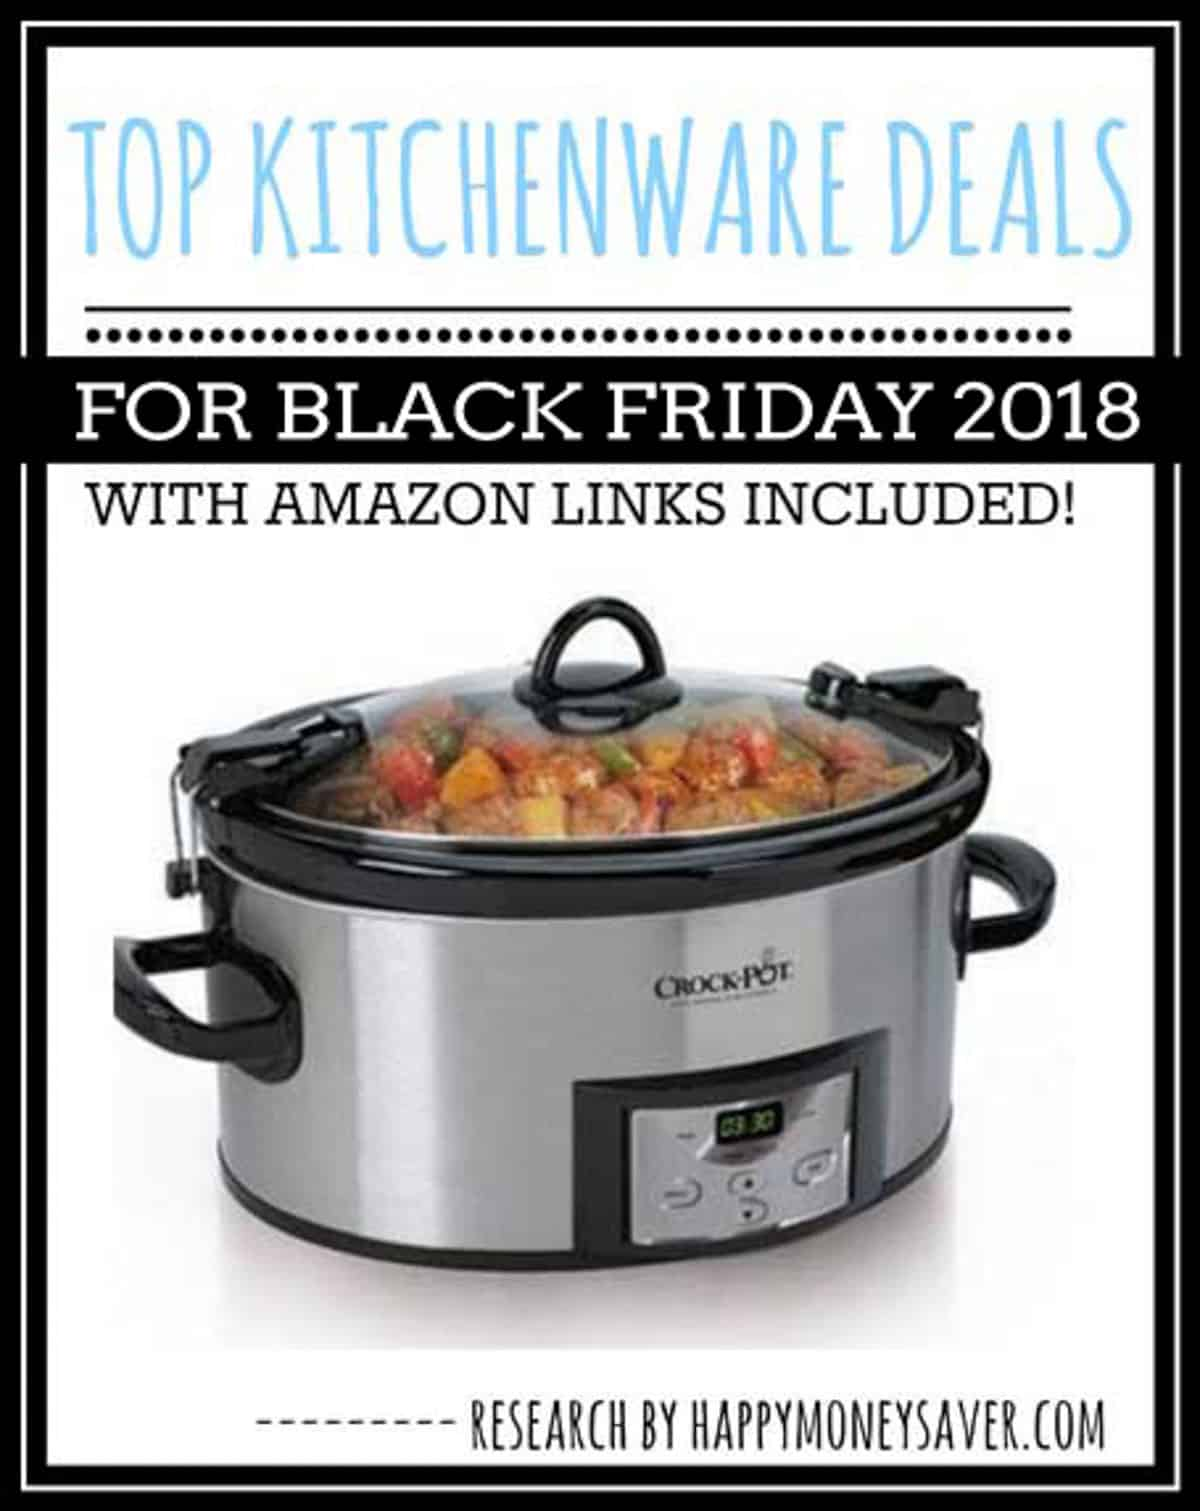 Here is a round up of all the top Black Friday Kitchen Deals for 2018 - sure to make any cook thrilled to save money!